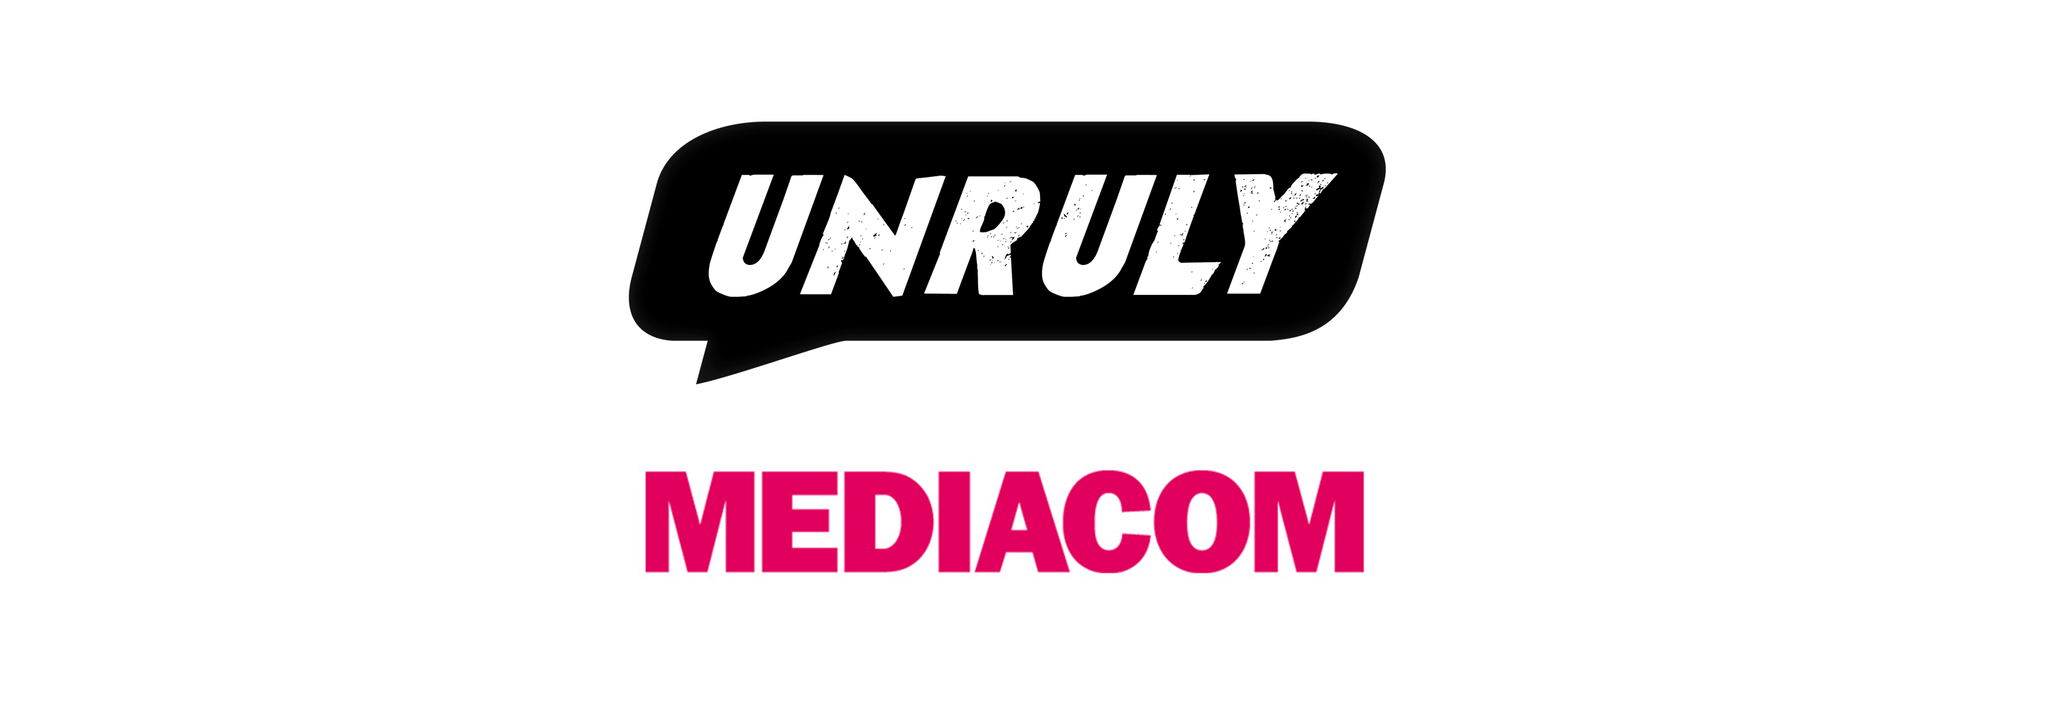 Unruly partners with Mediacom to bring emotional targeting to Australia https://t.co/ZkMZaE2J7J https://t.co/HApyOPY6OD